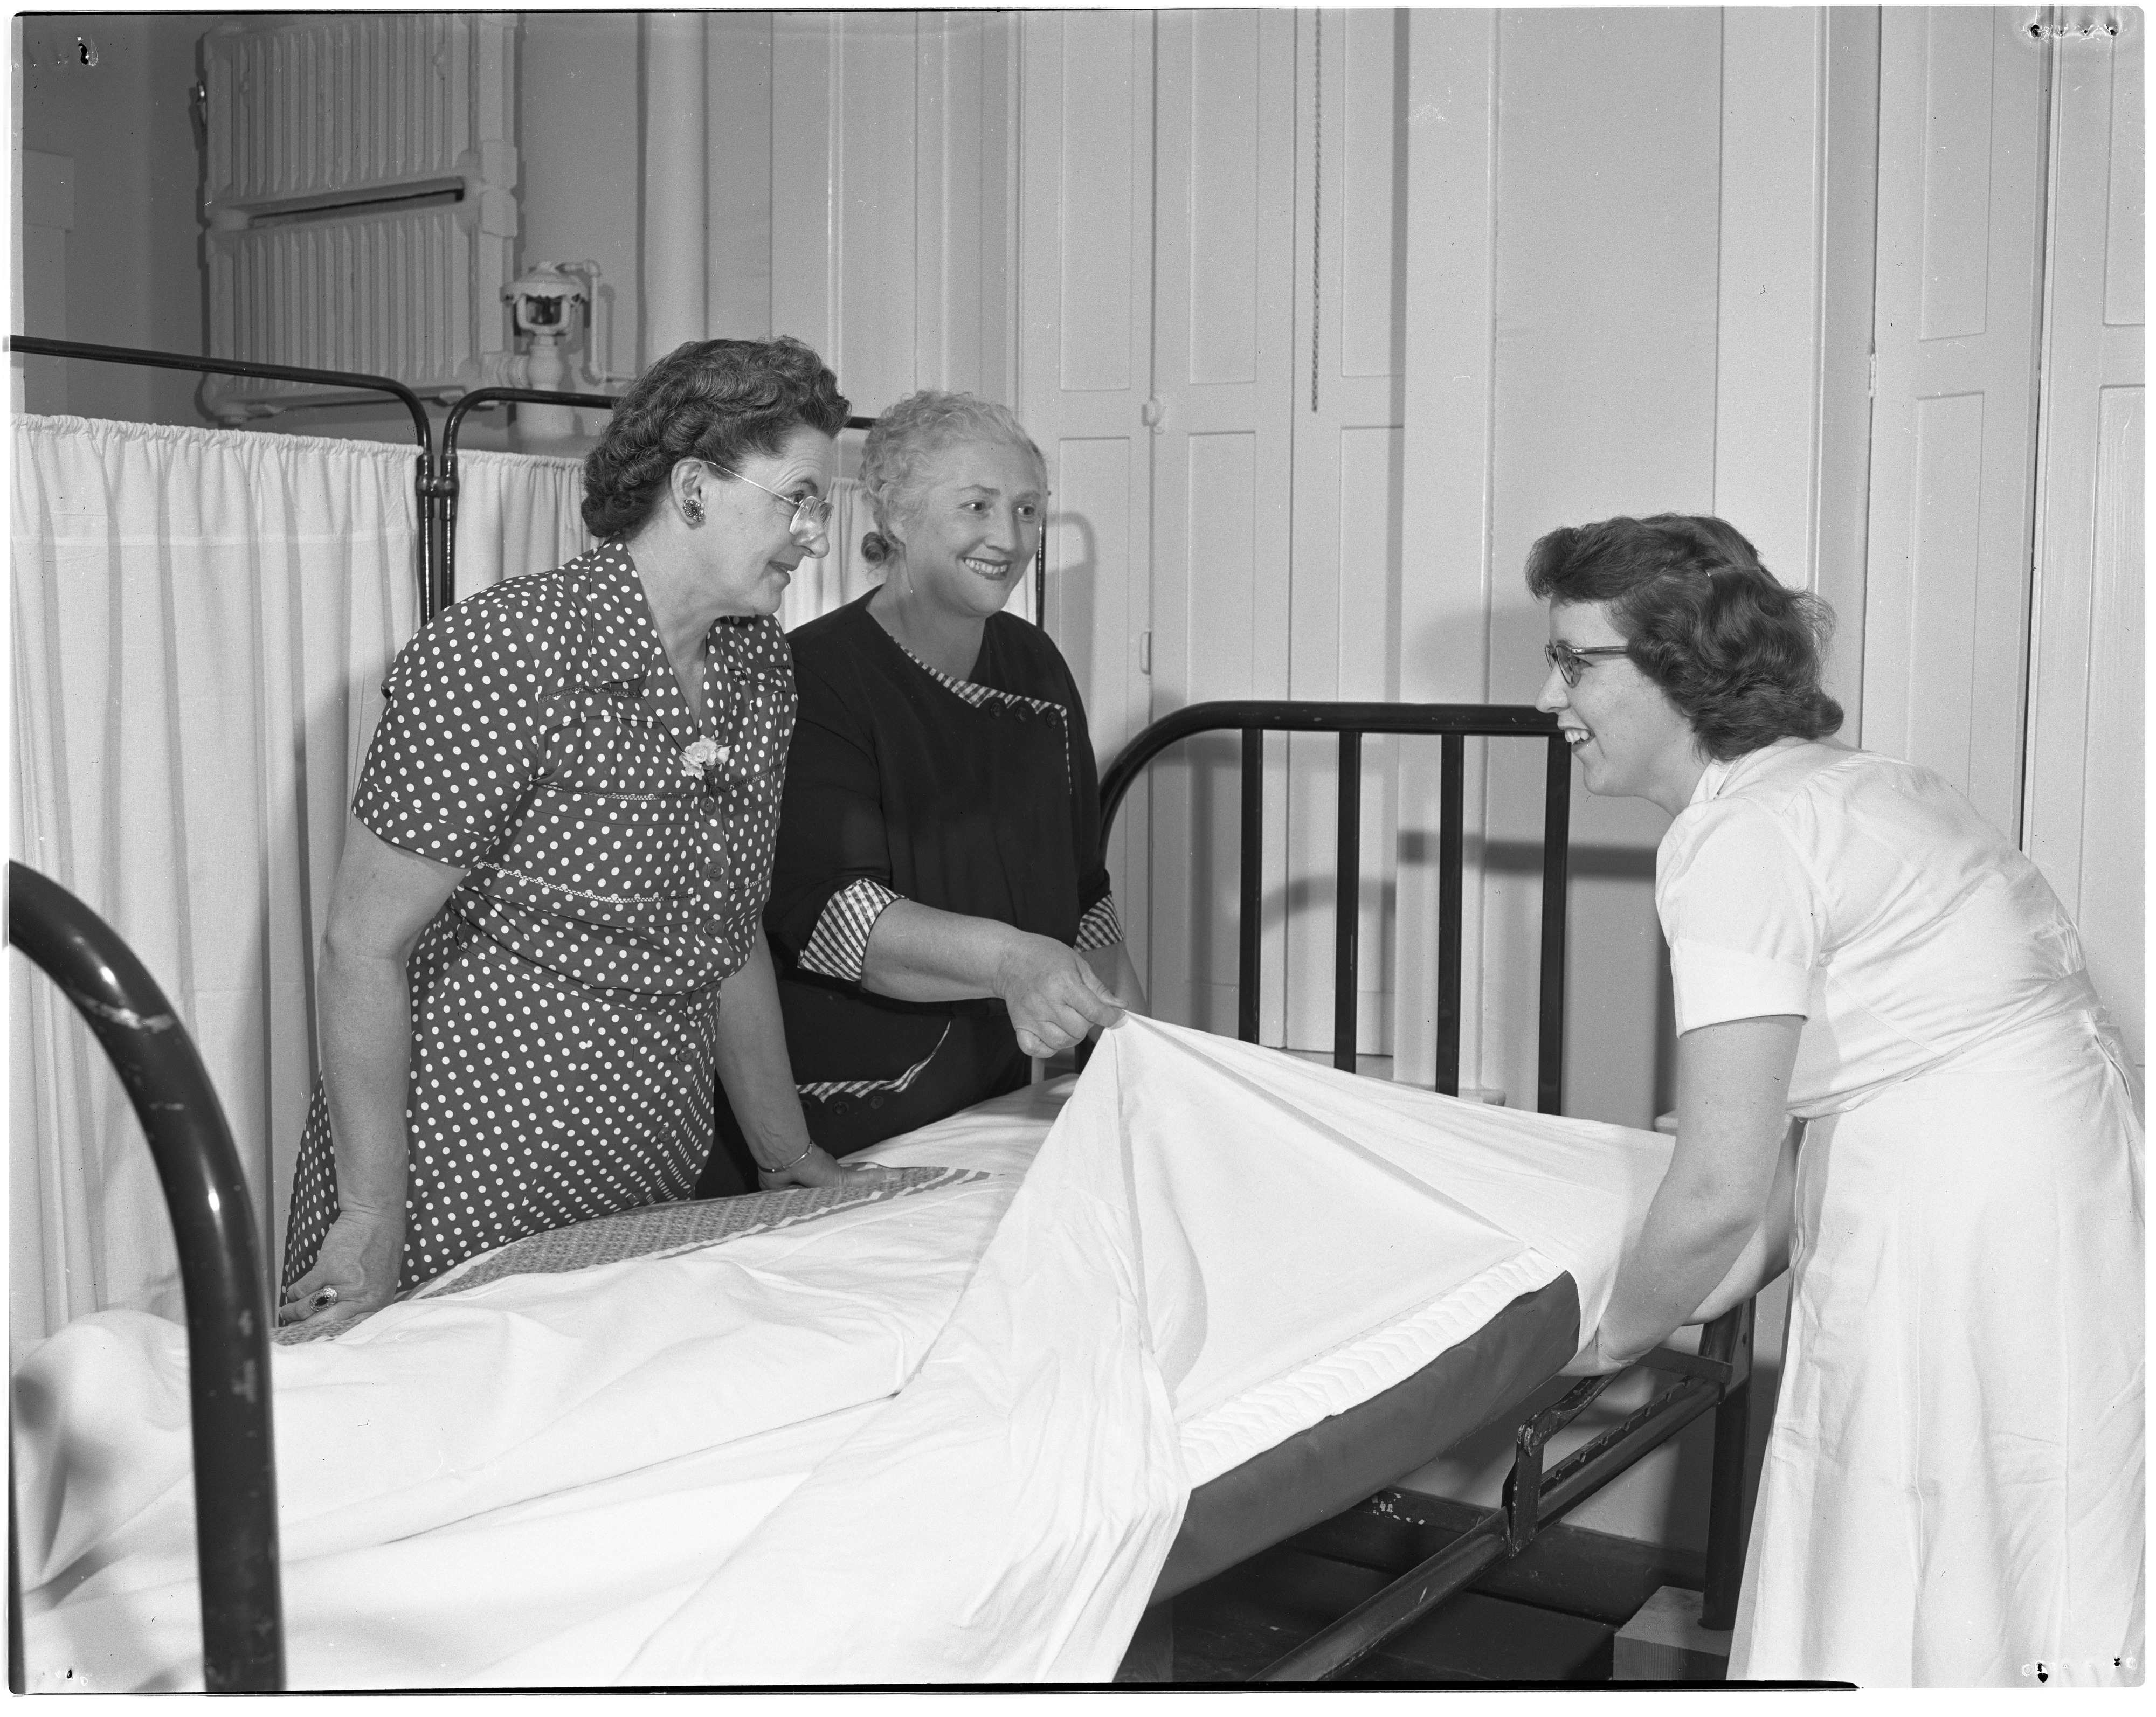 Pittsfield Red Cross Extension Course at Old Maternity Hospital, May 1951 image